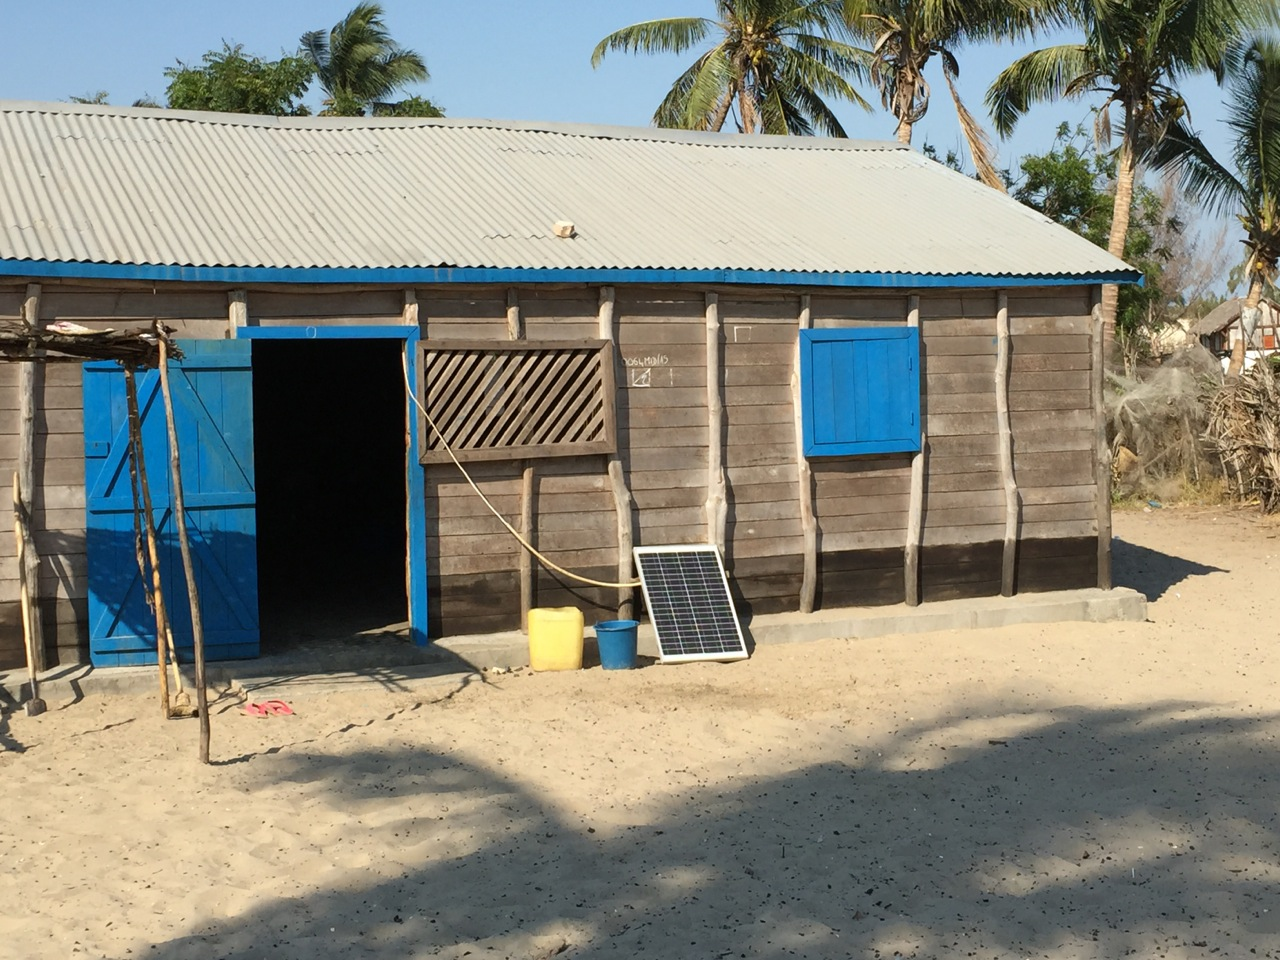 The only source of electricity in this tiny fishing village outside of Morondava is solar panels. But only the richest people can afford them, so most people burn charcoal or wood.